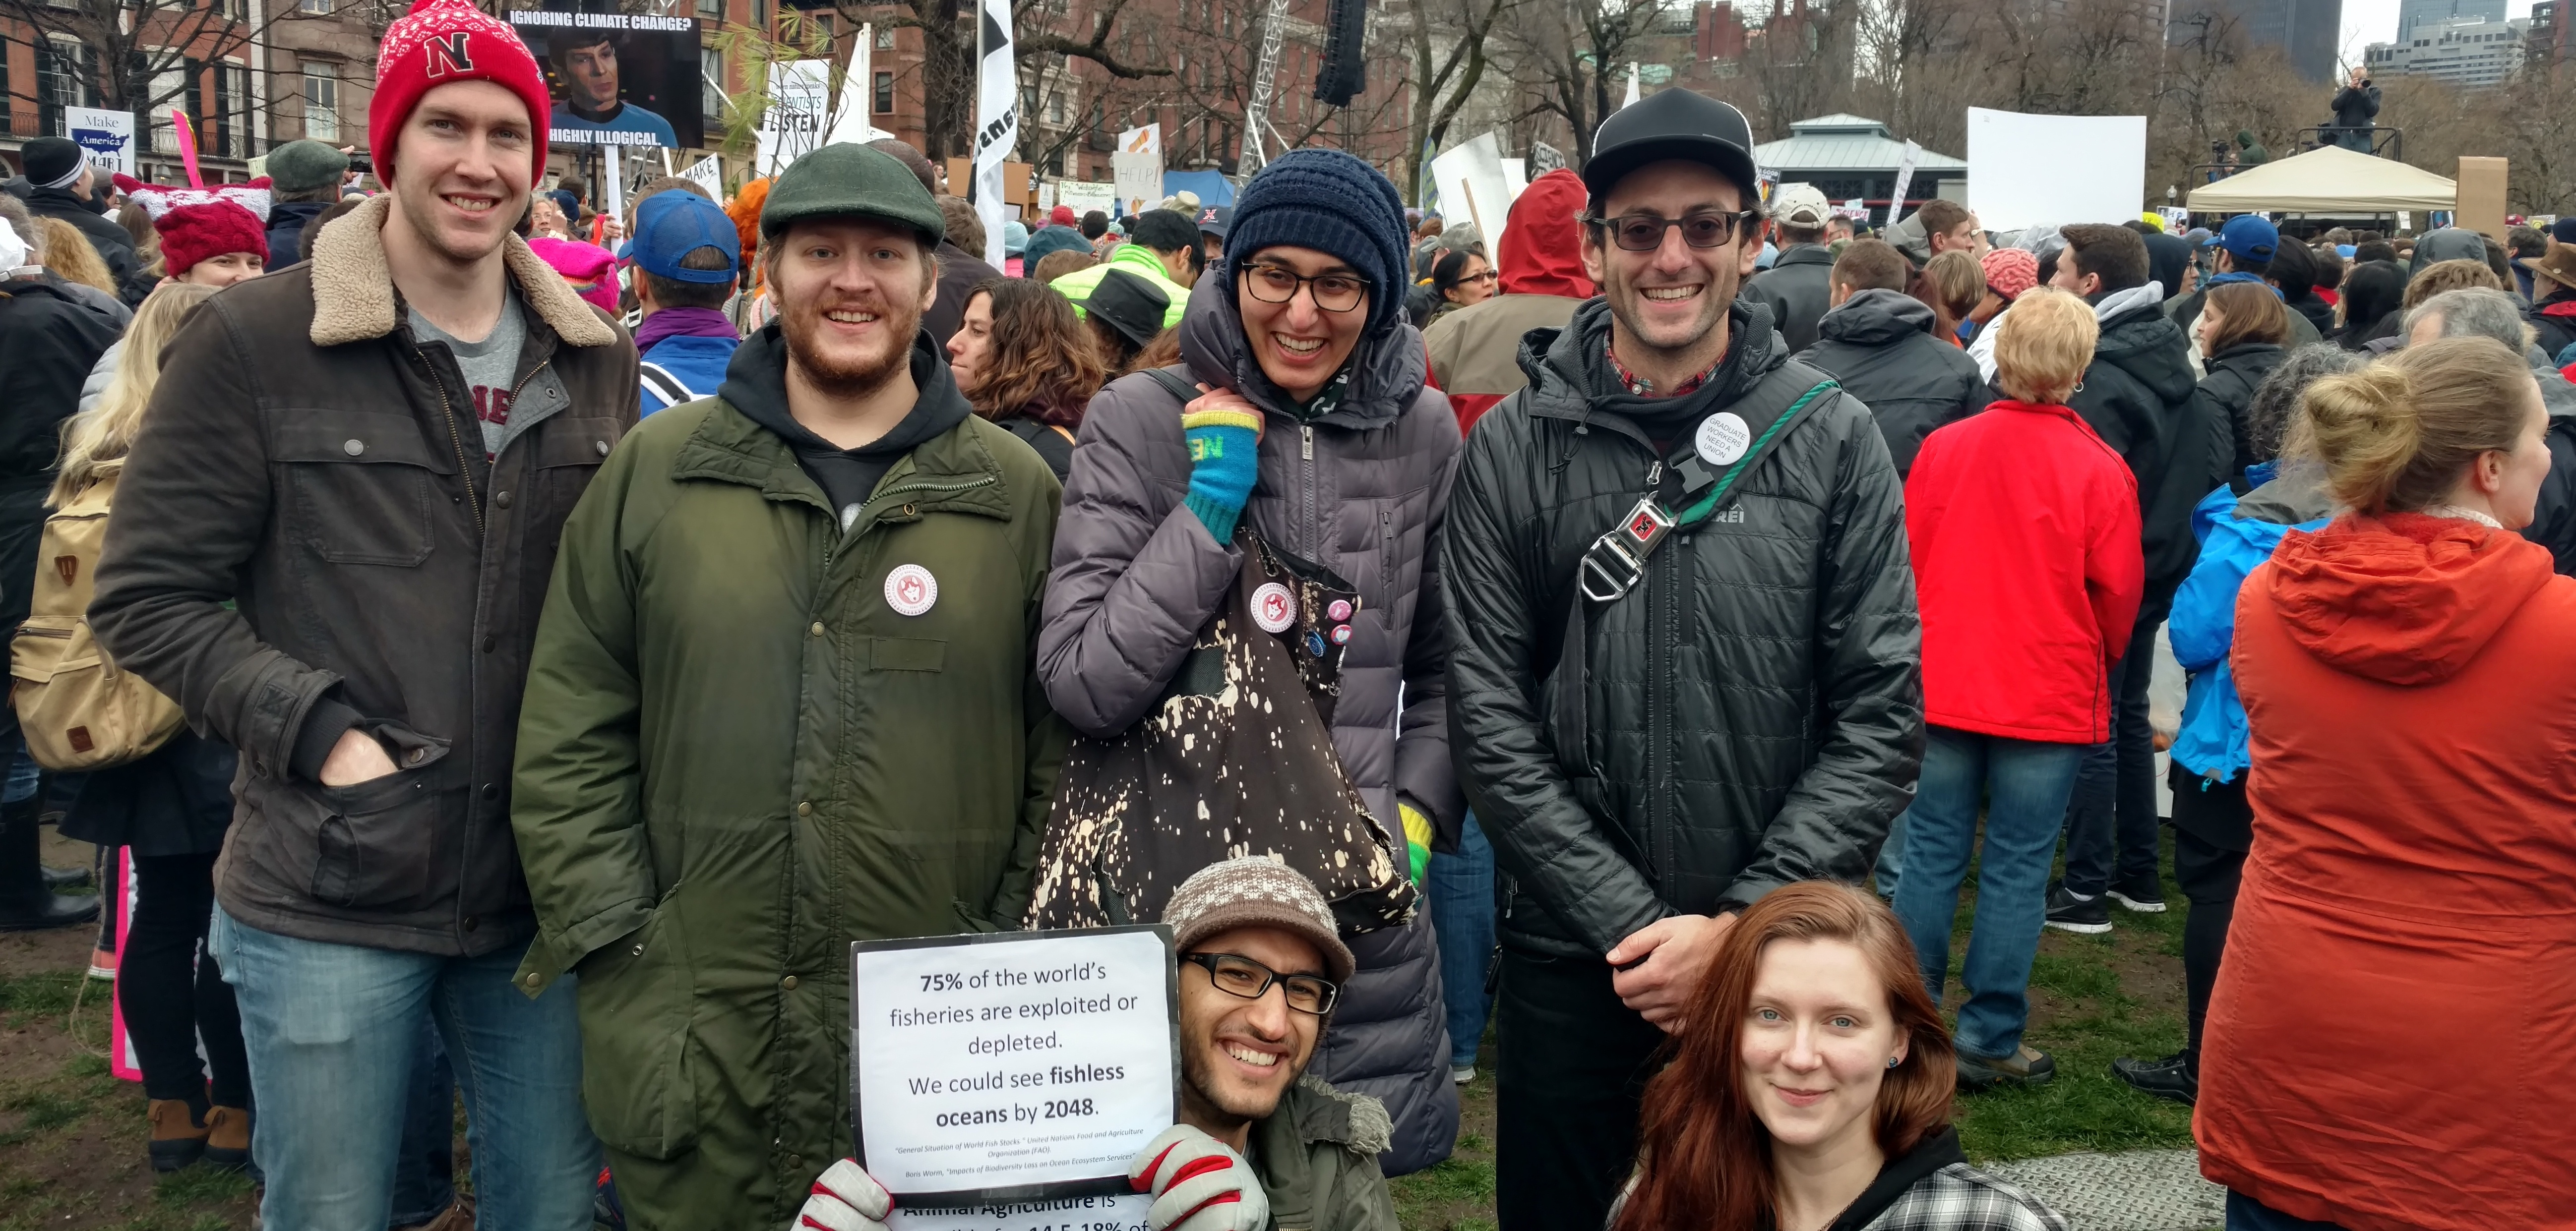 GENU-UAW Members at the Boston March for Science